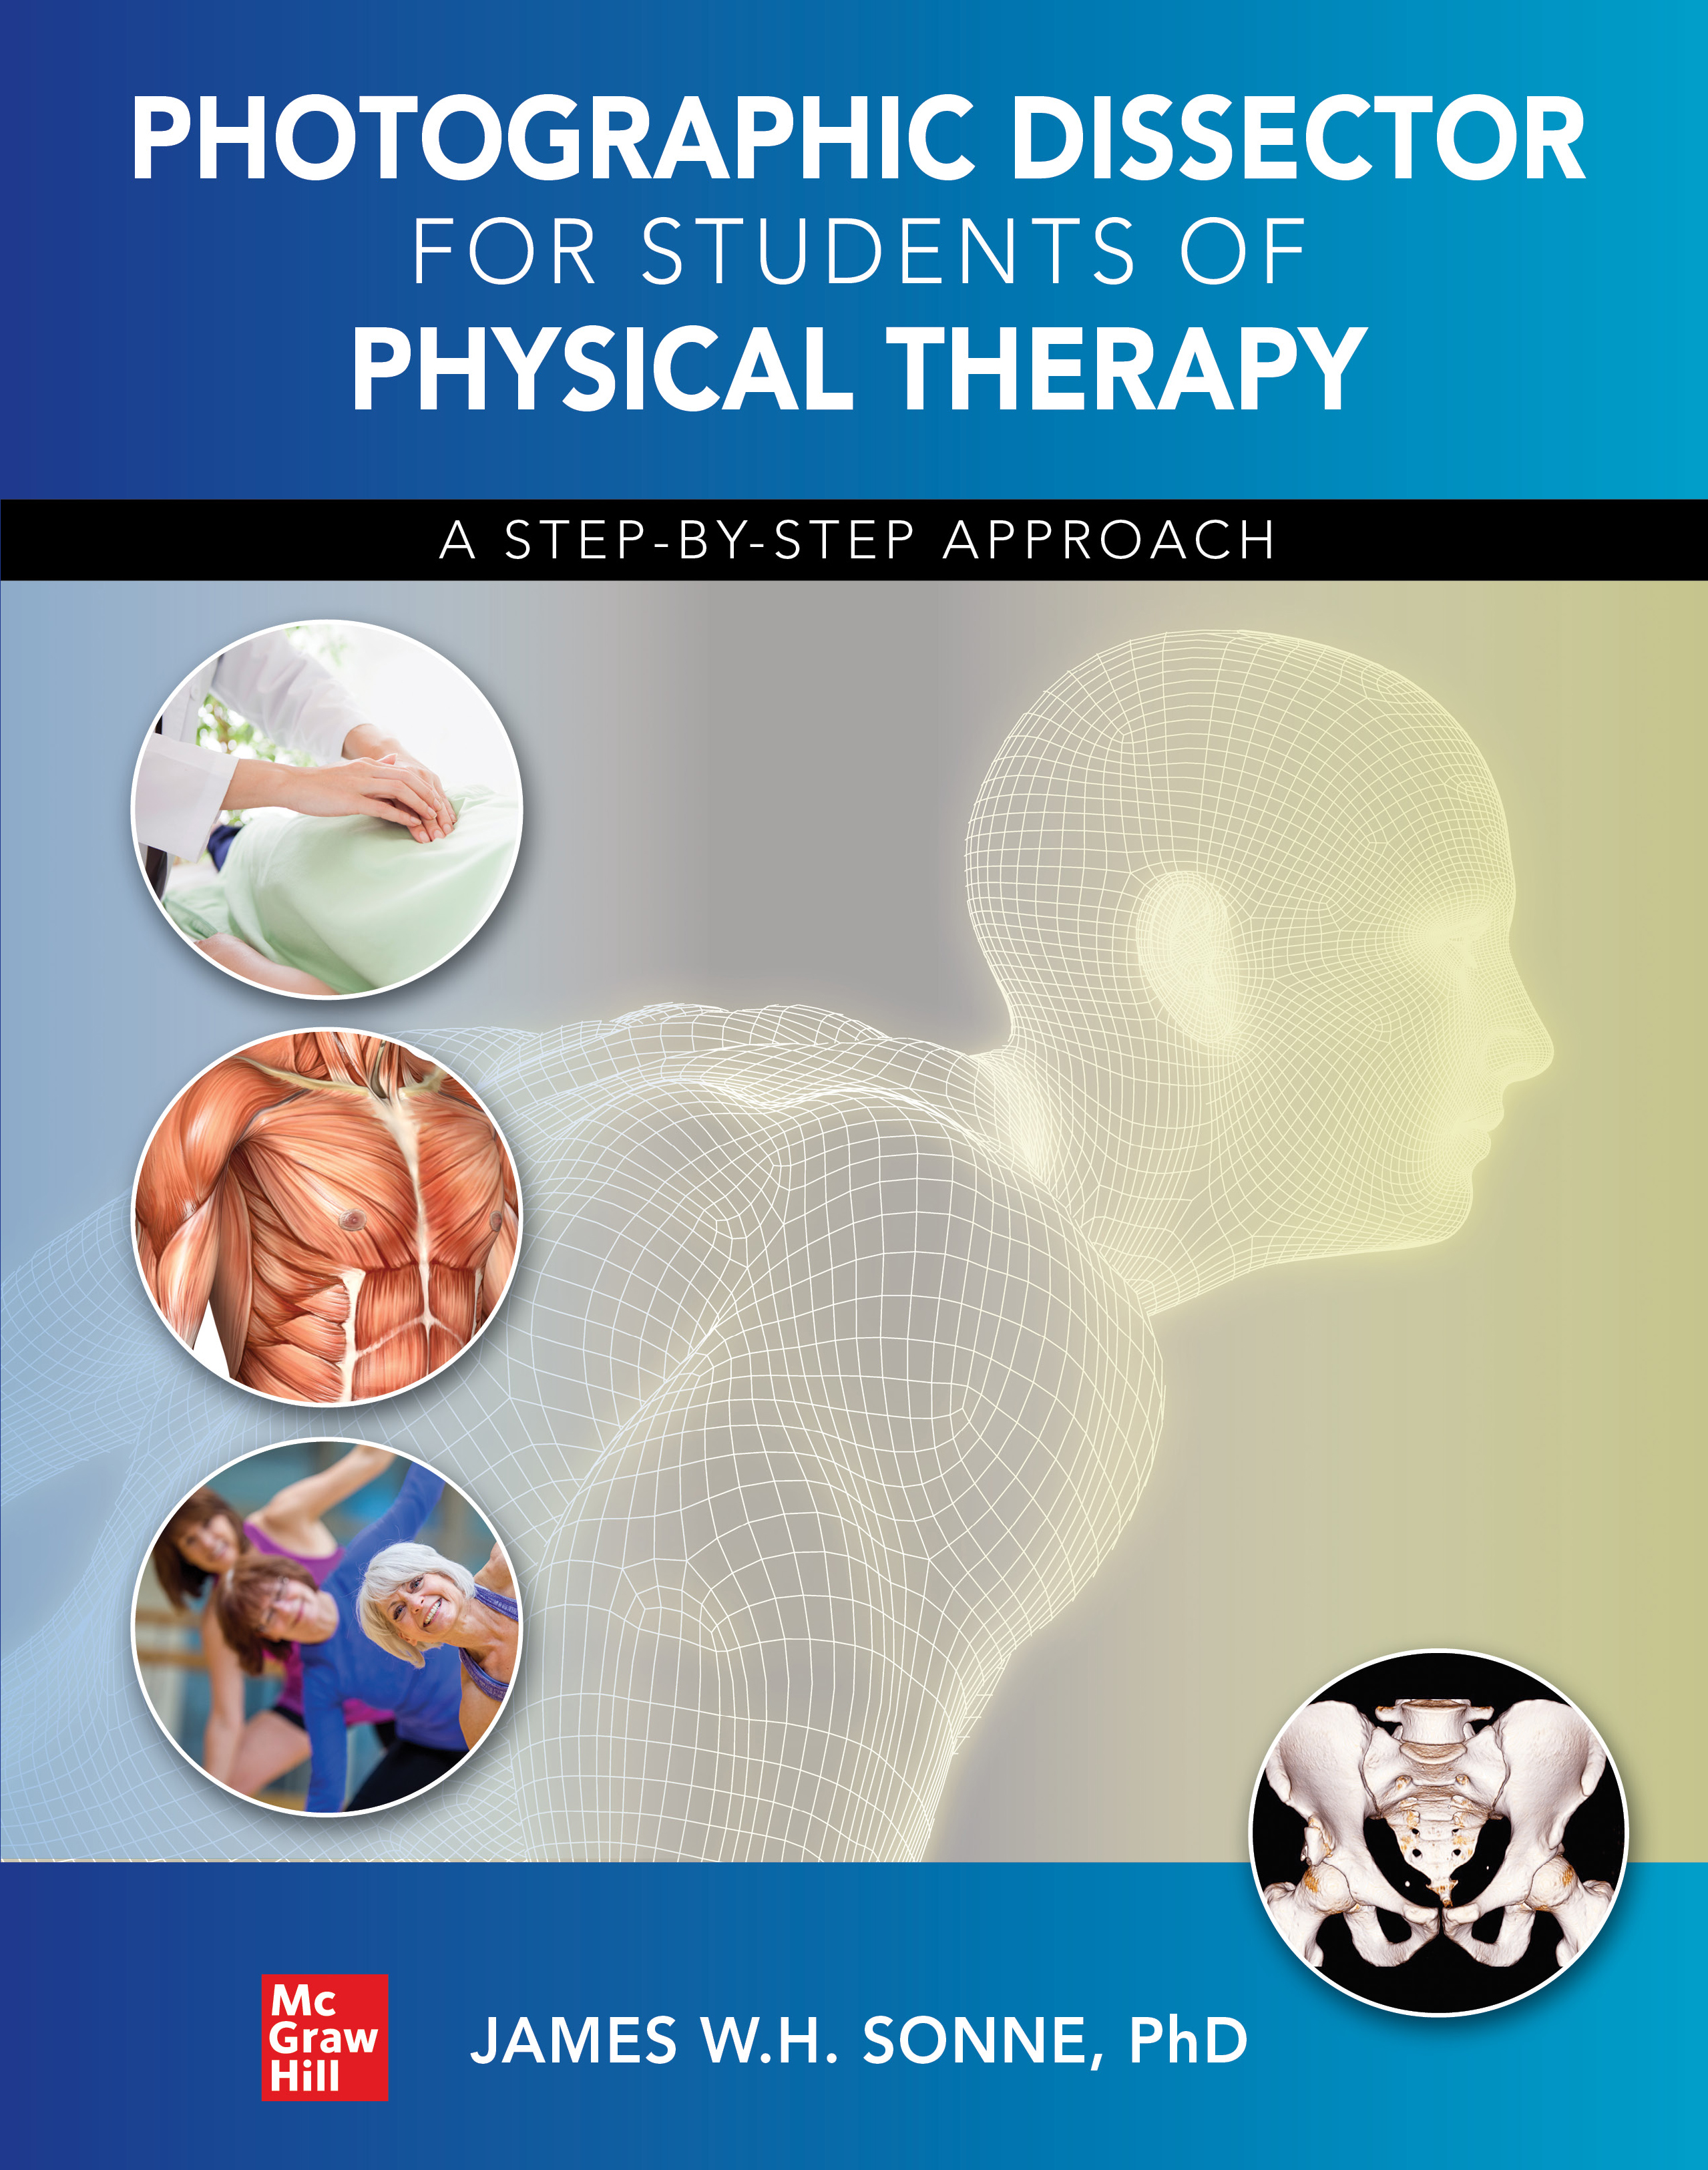 Photographic Dissector for Students of Physical Therapy: A Step-by-Step Approach